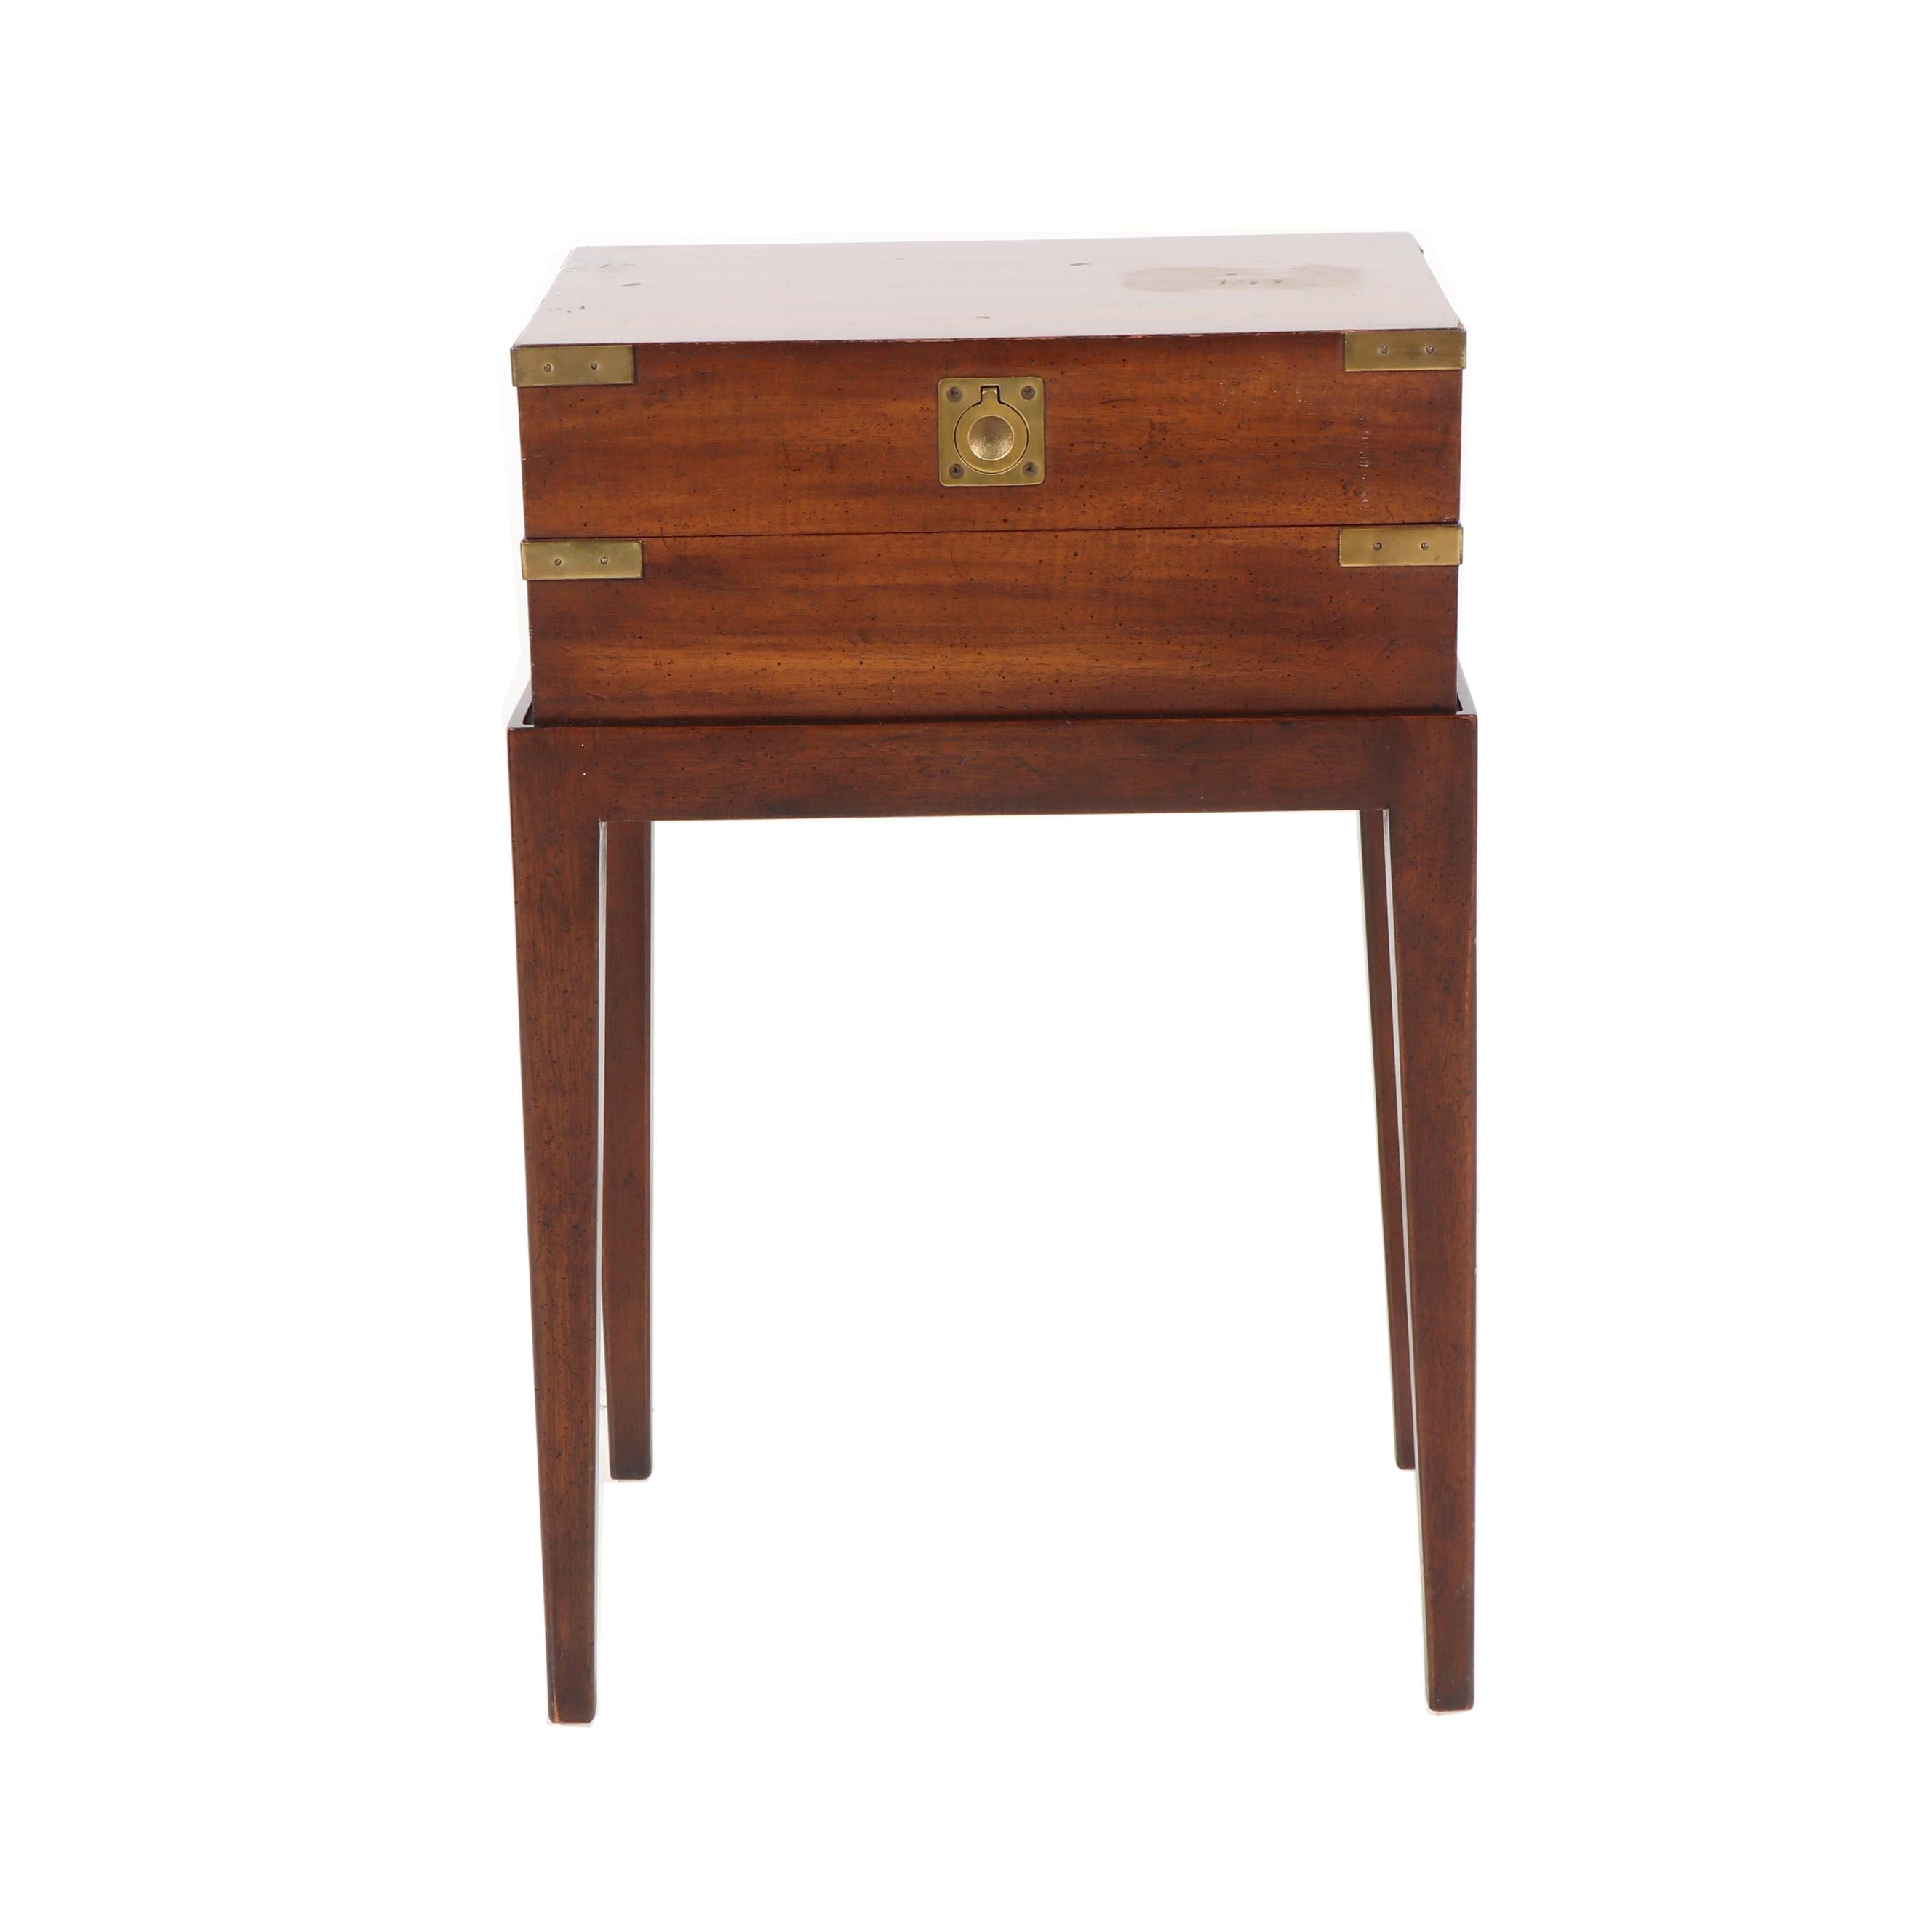 Campaign Style Walnut Chest on Stand End Table by Henredon, 20th Century